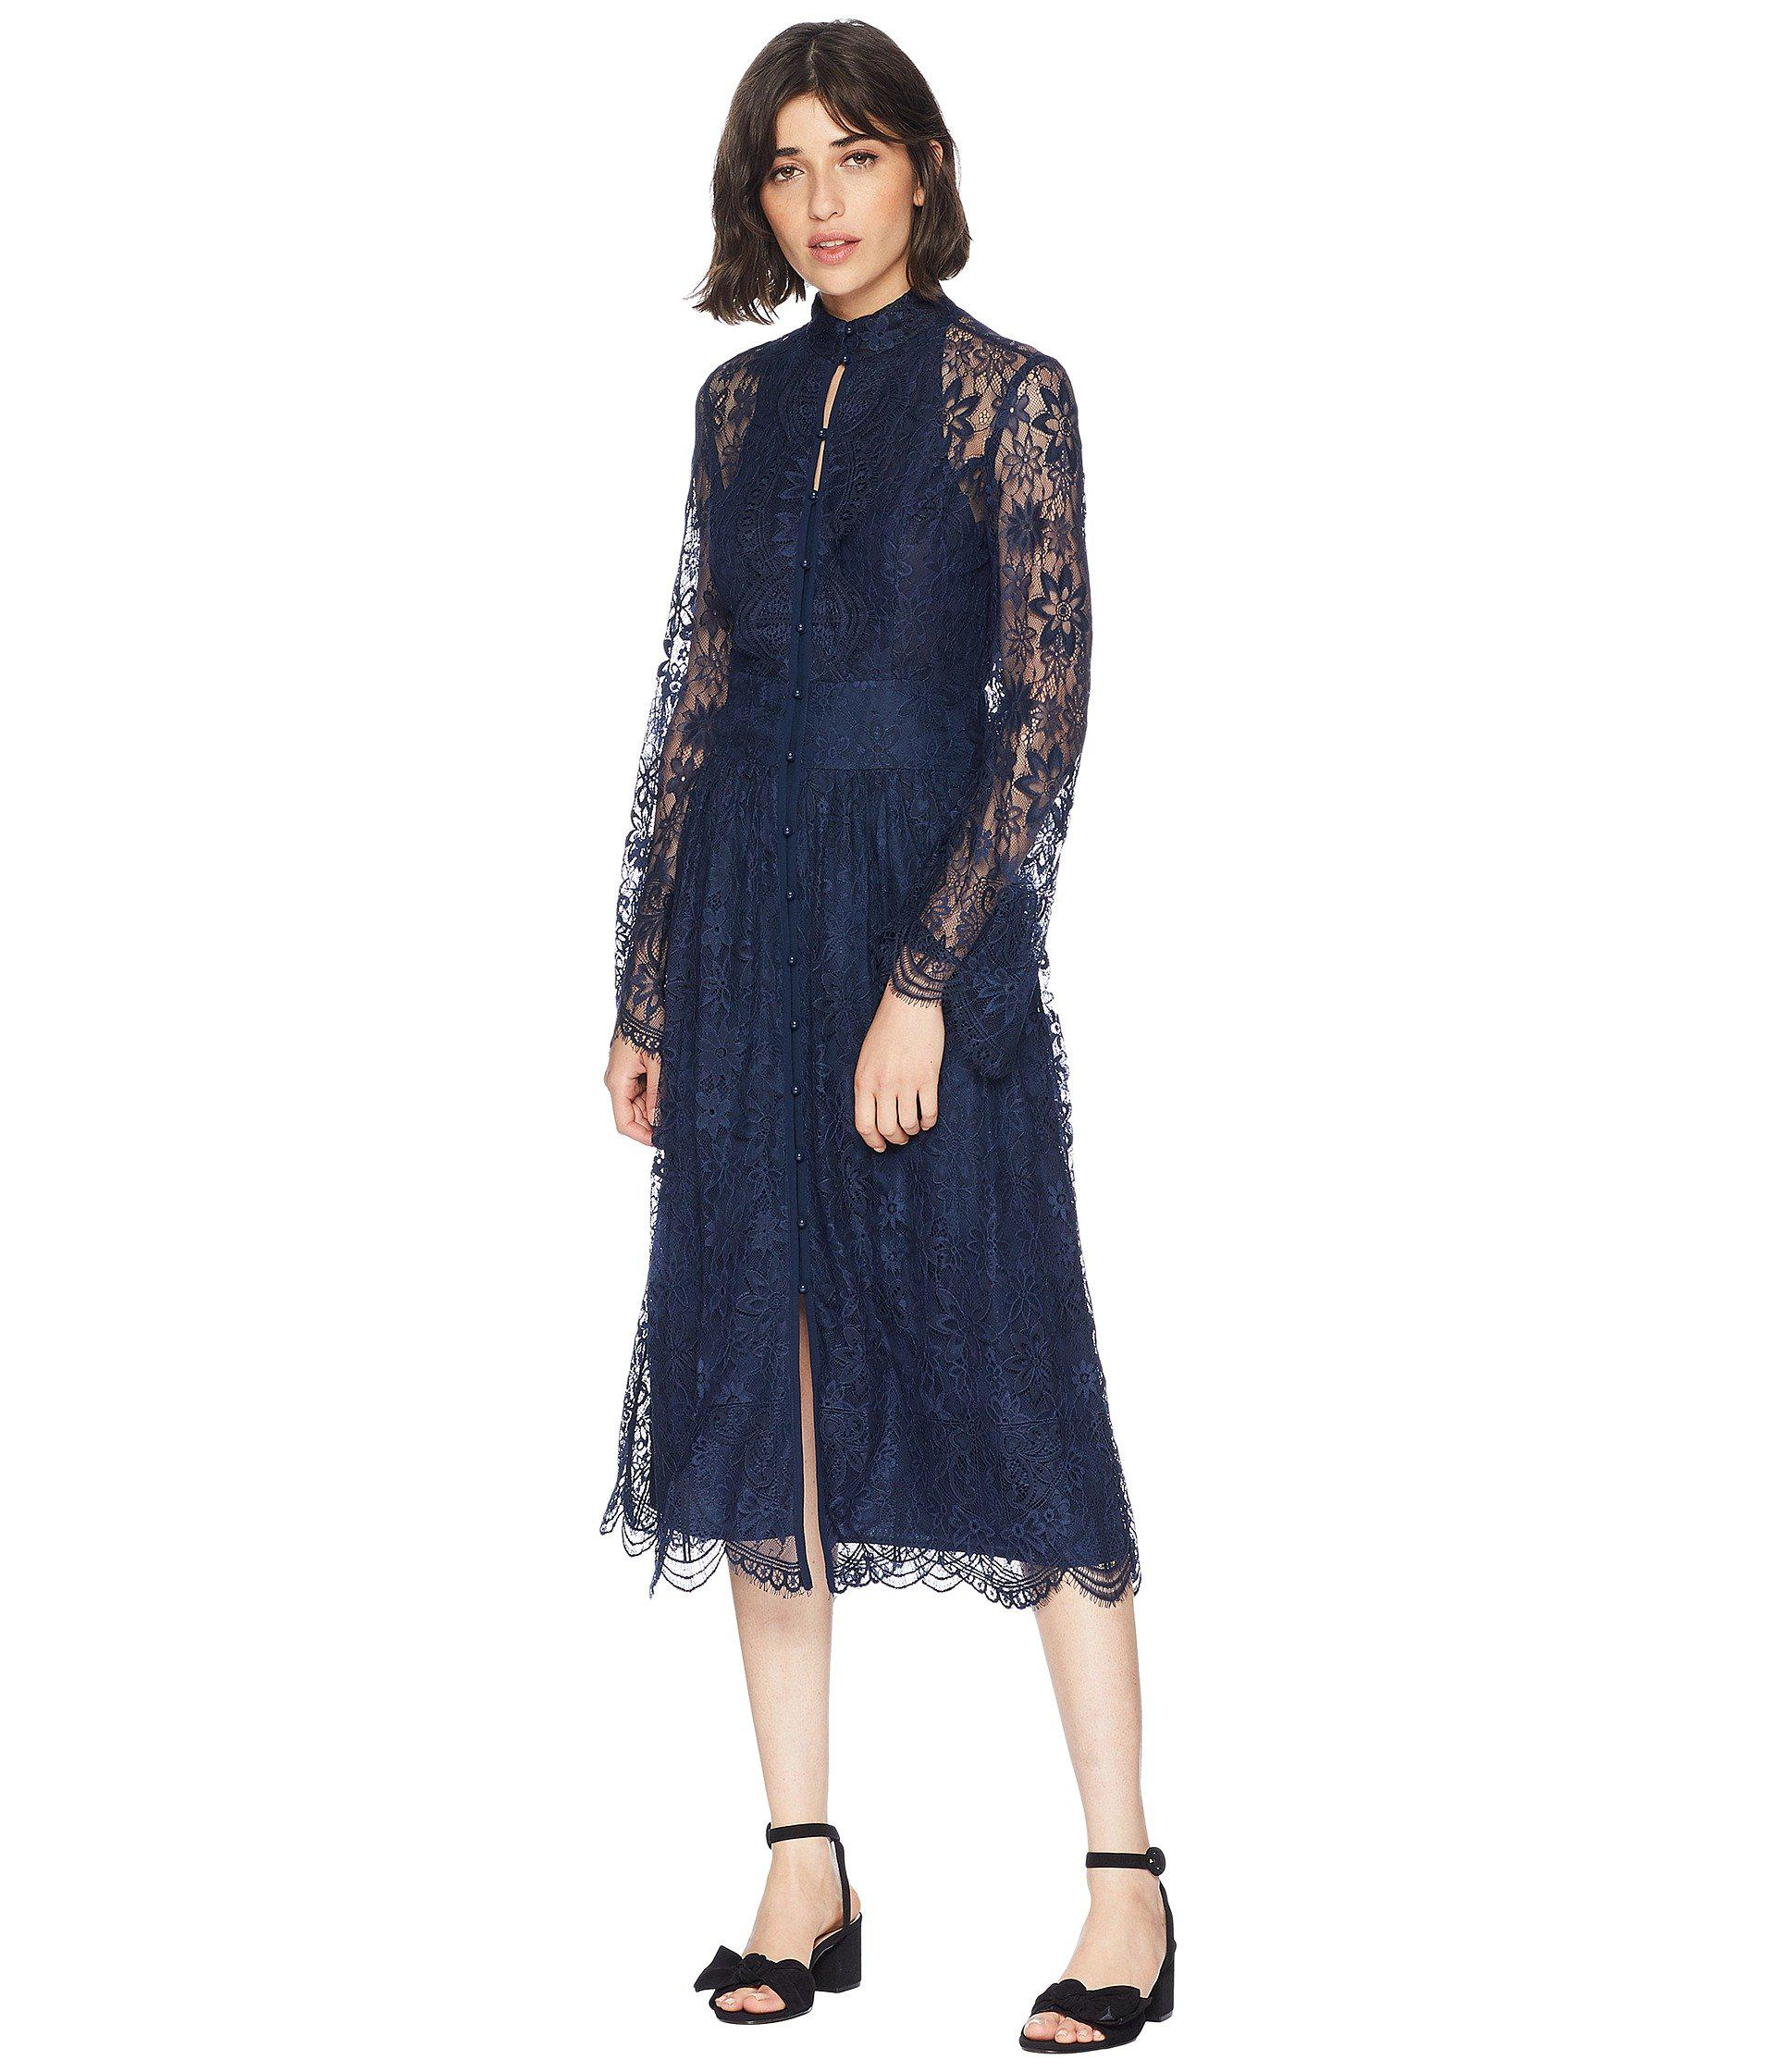 Lyst - Juicy Couture Kendall Lace Midi Dress in Blue 7907ba0e7